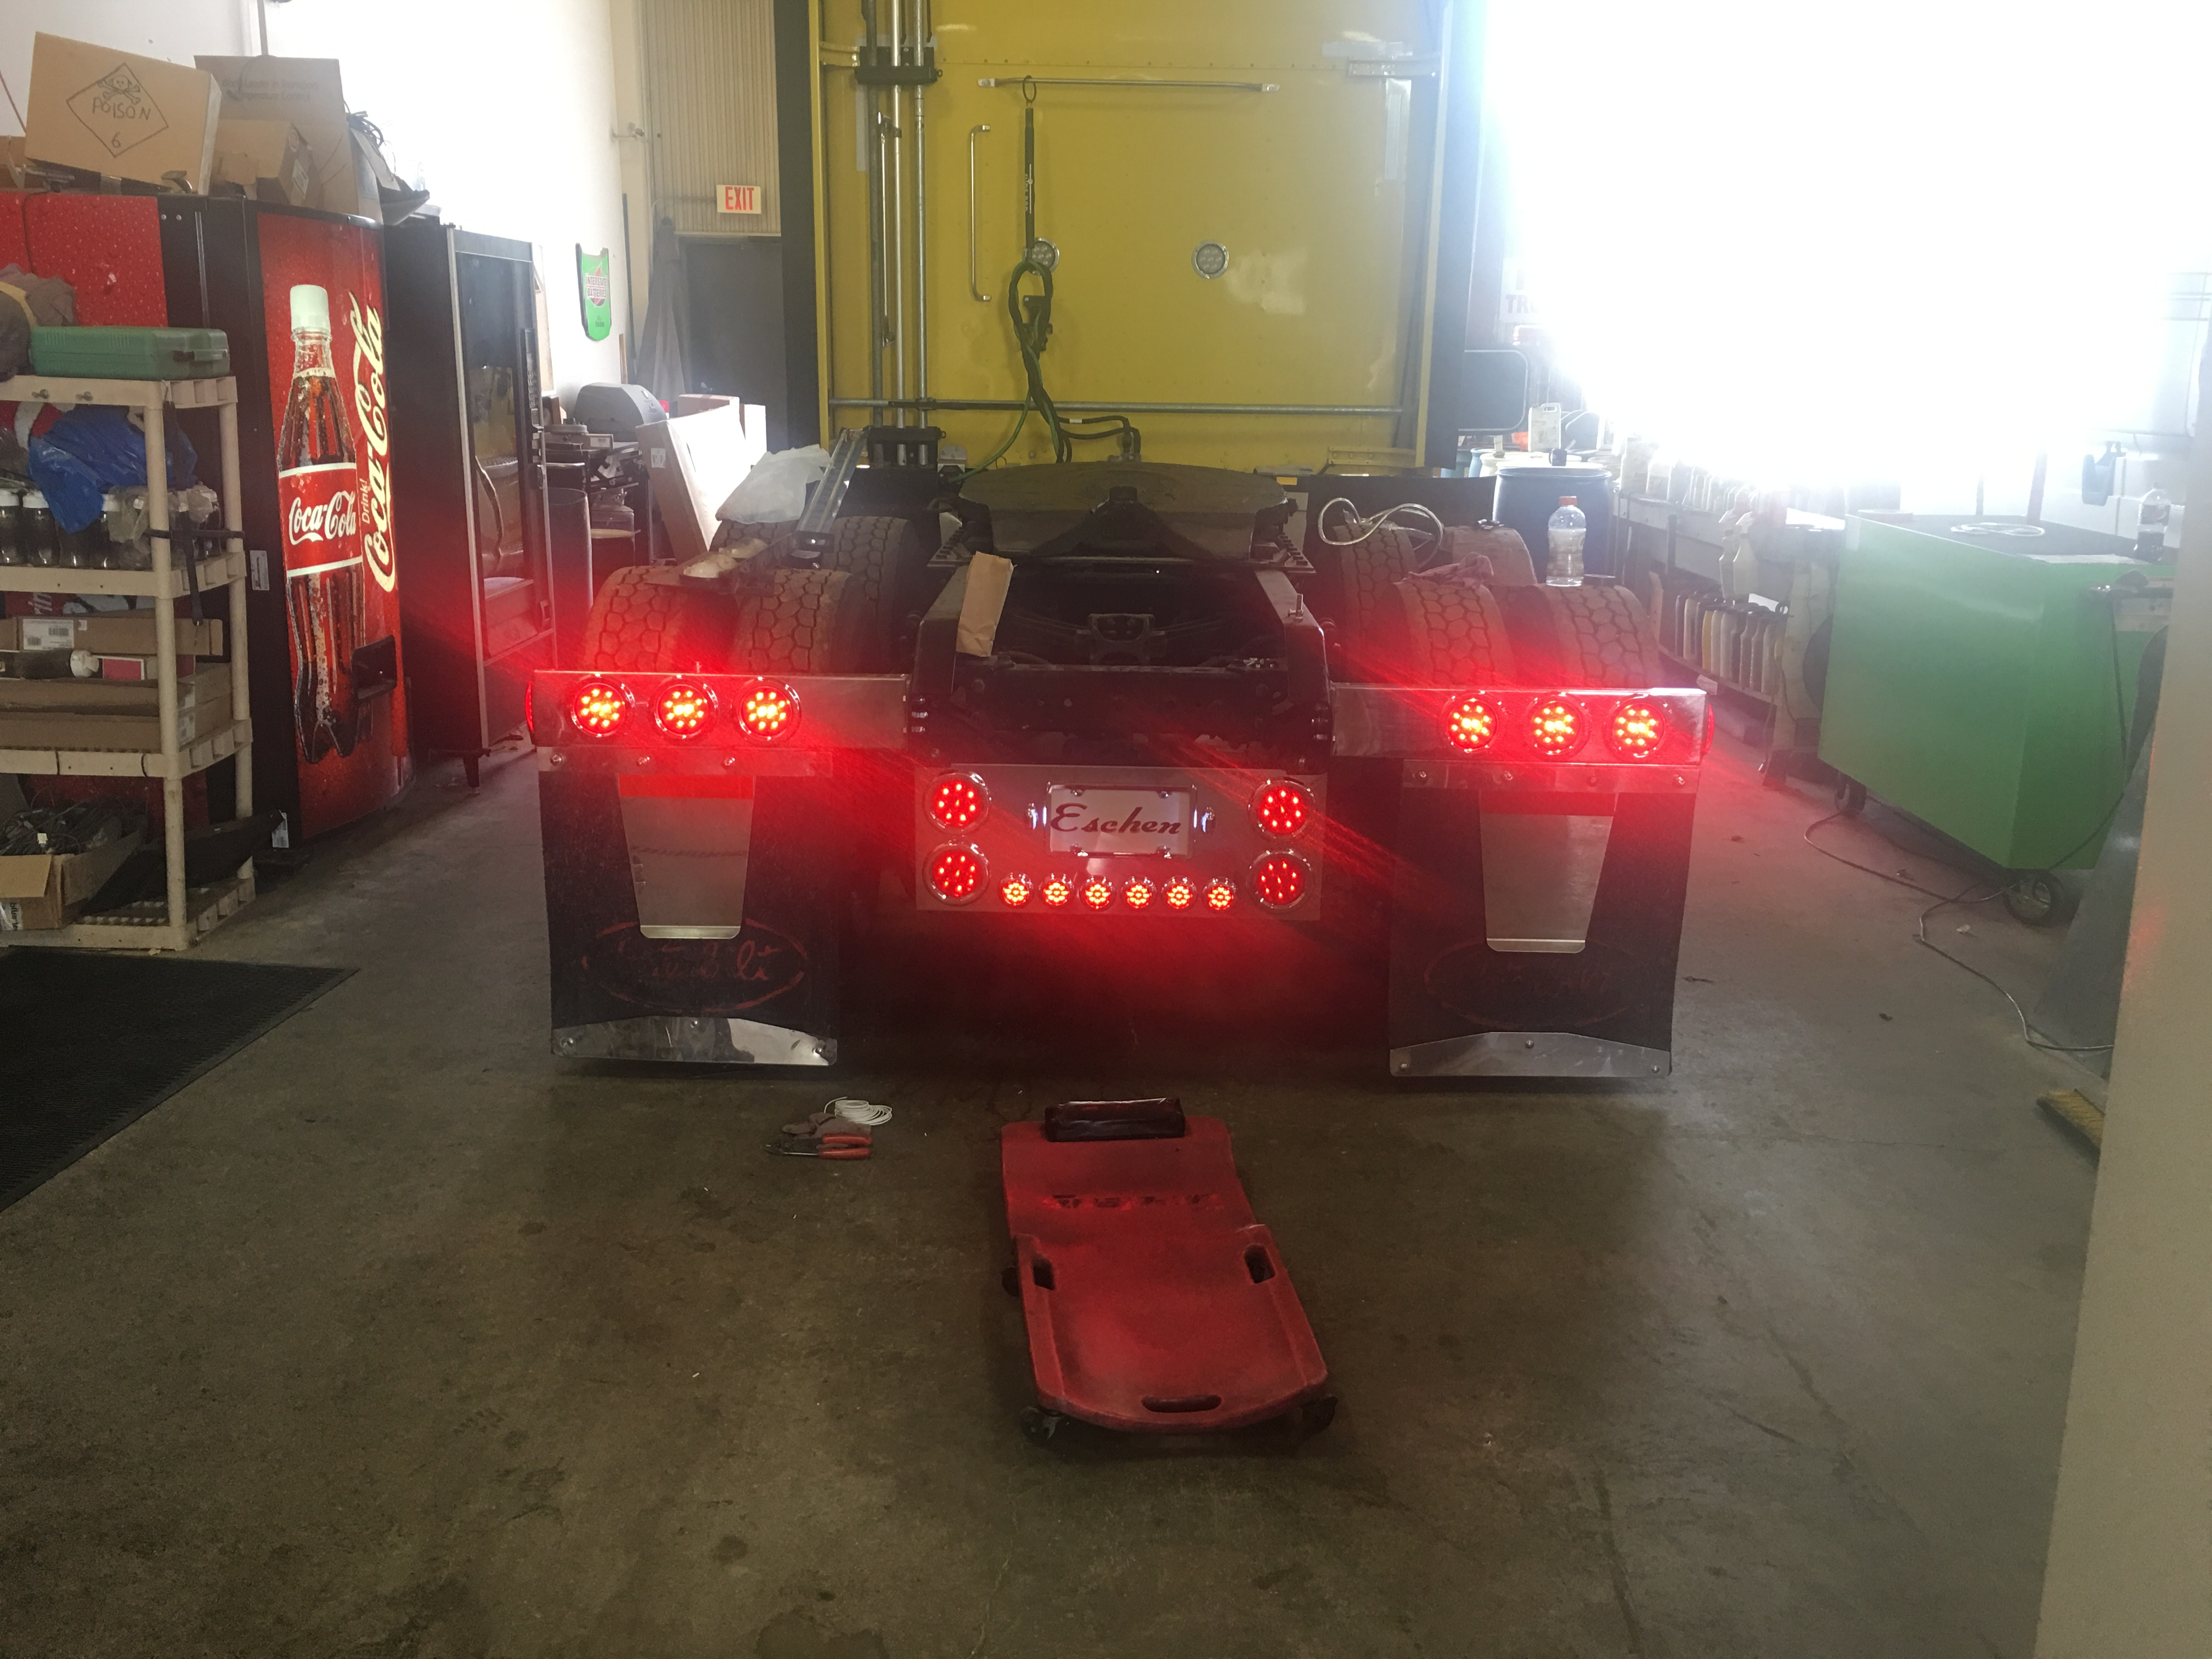 Jeff's big rig, second picture.